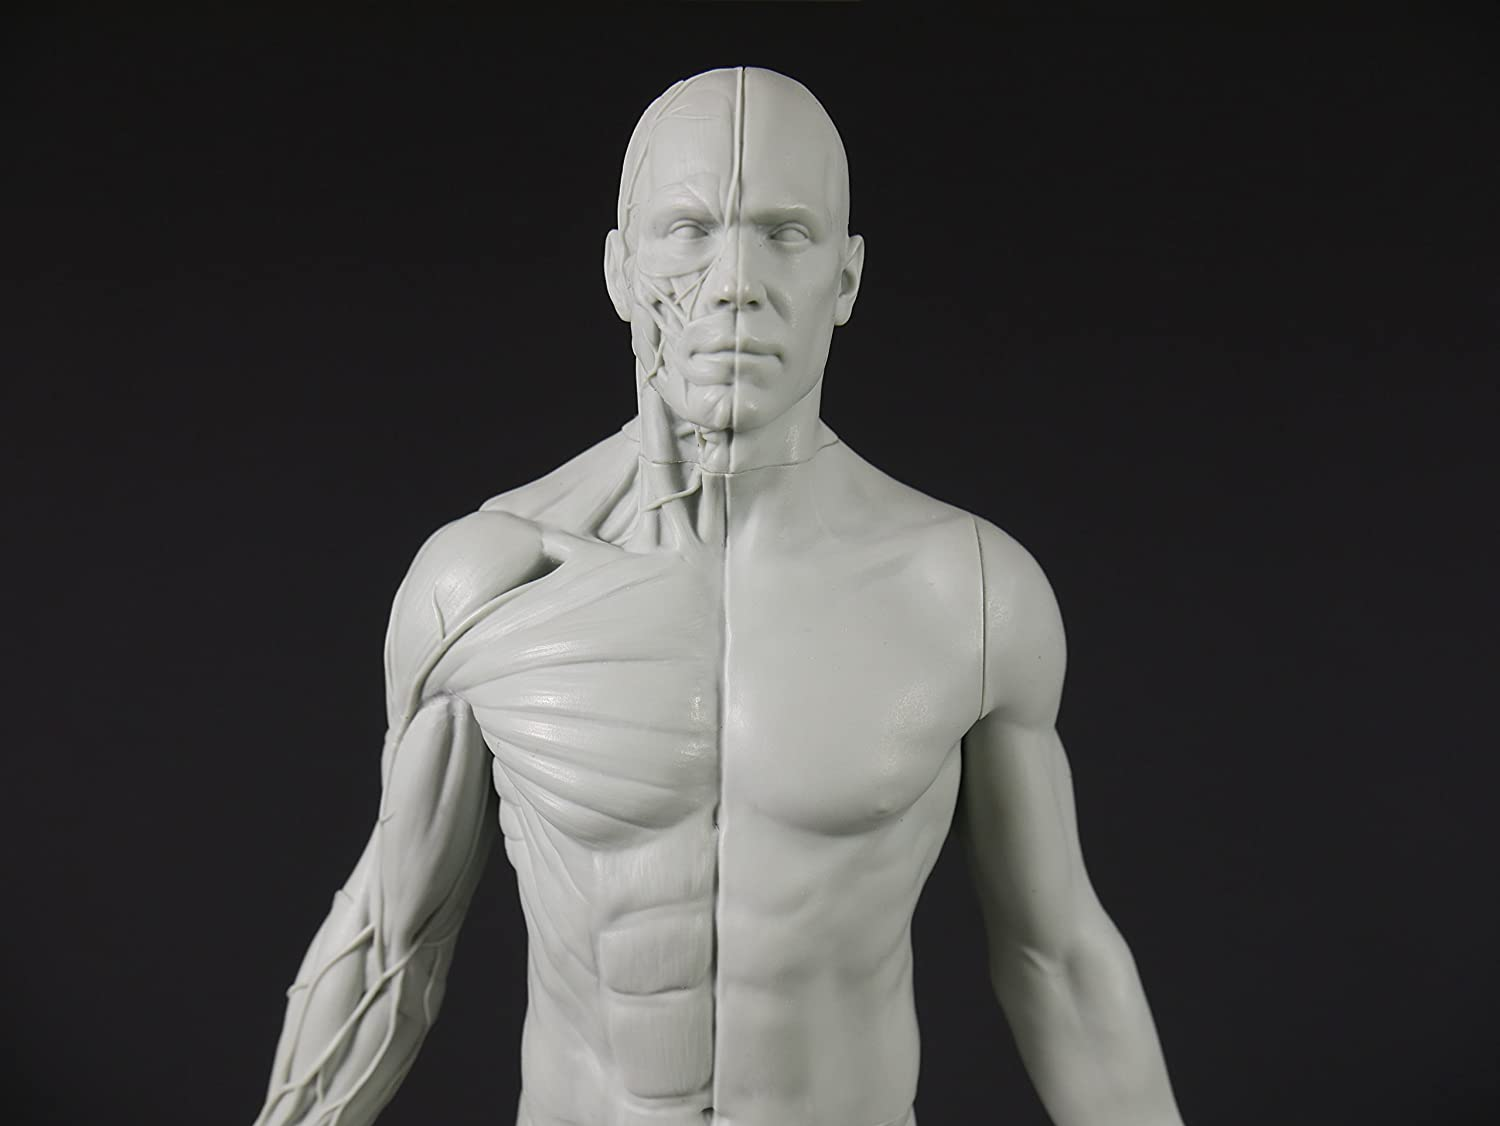 Male Adaptable Anatomy Figure 13.4-inch Anatomical Reference for Artists Grey